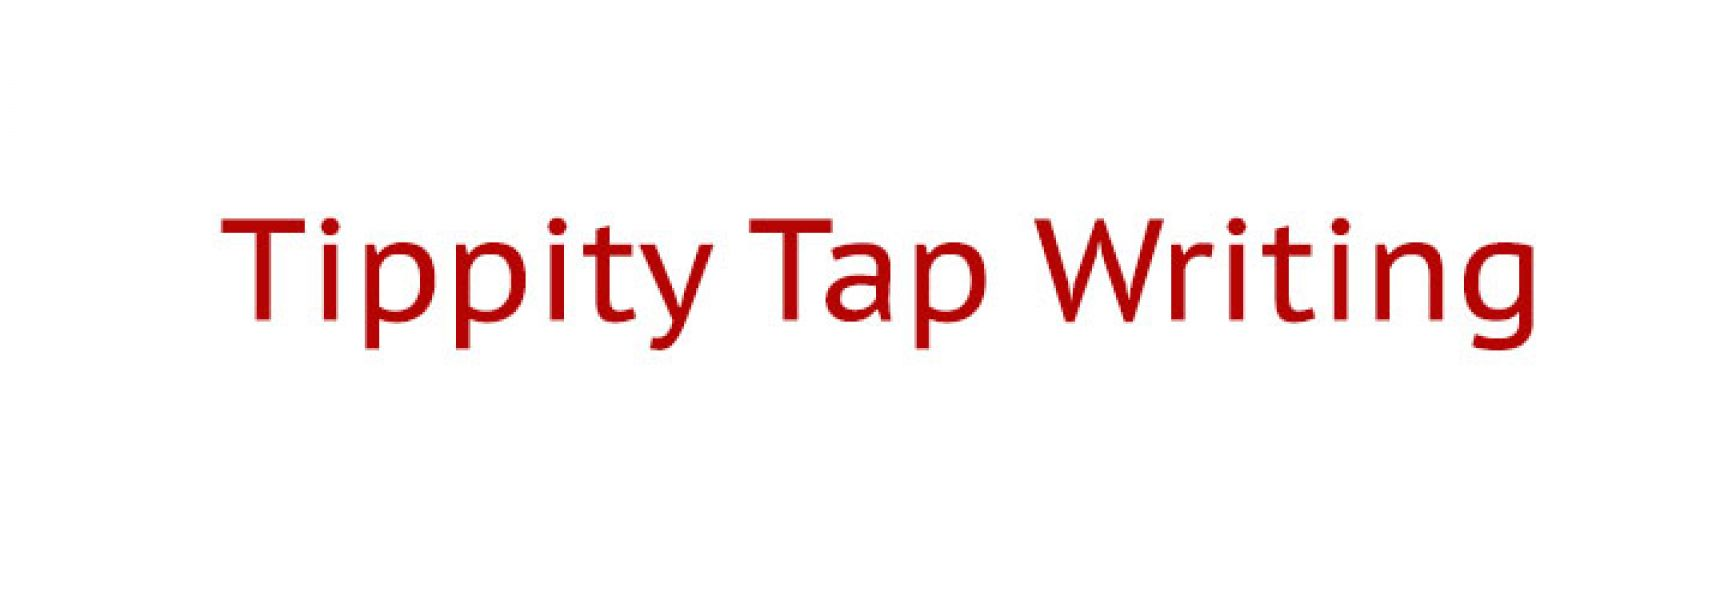 Tippity Tap Writing for Words that Sell